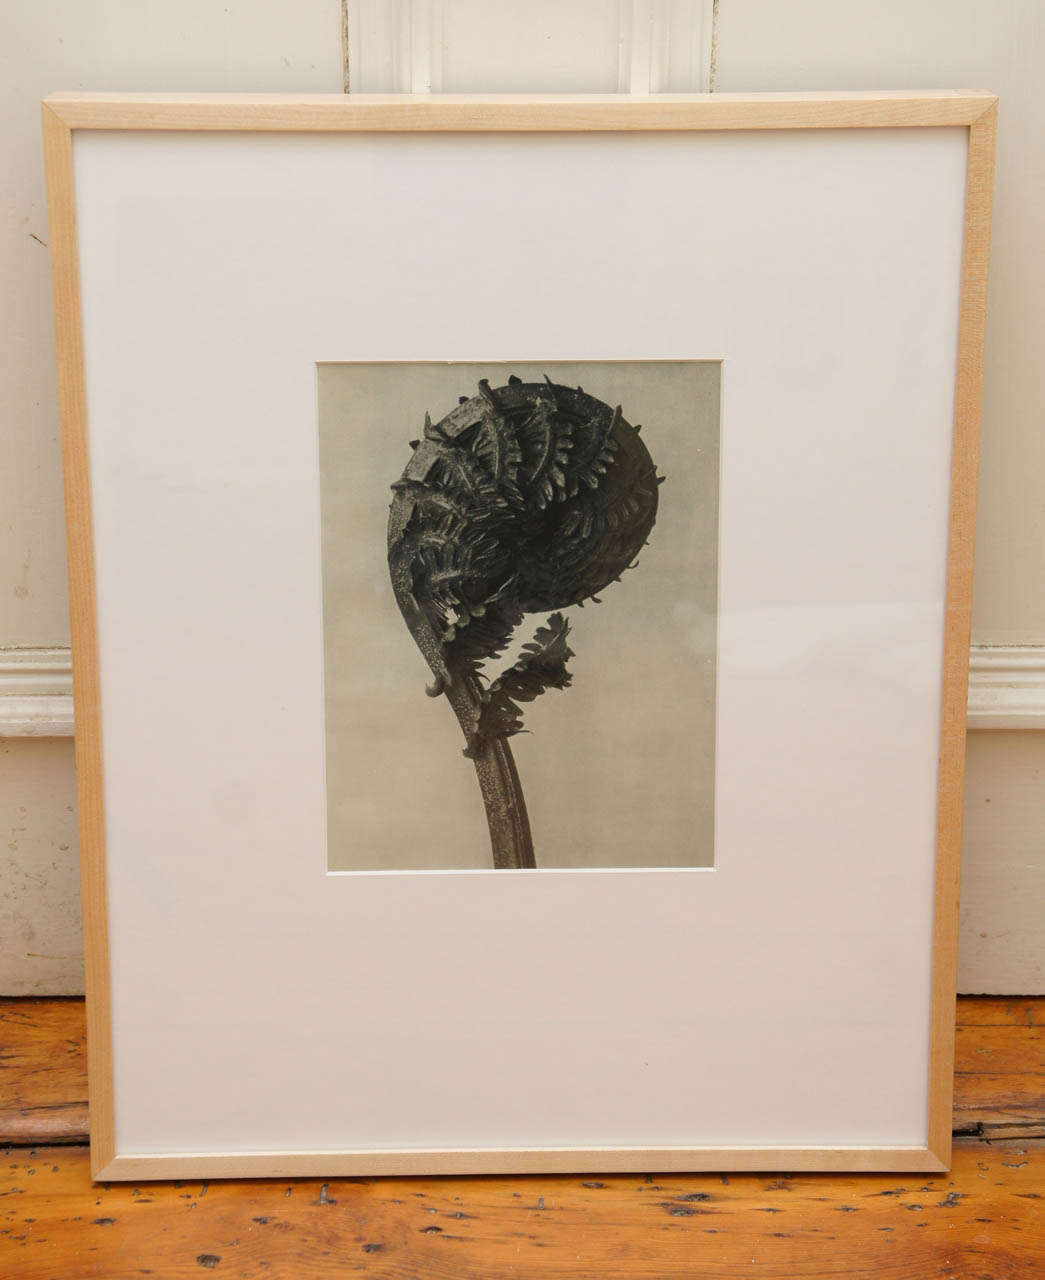 After Karl Blossfeldt (1865-1932) original botanical photogravure of a fern. From Urformen Der